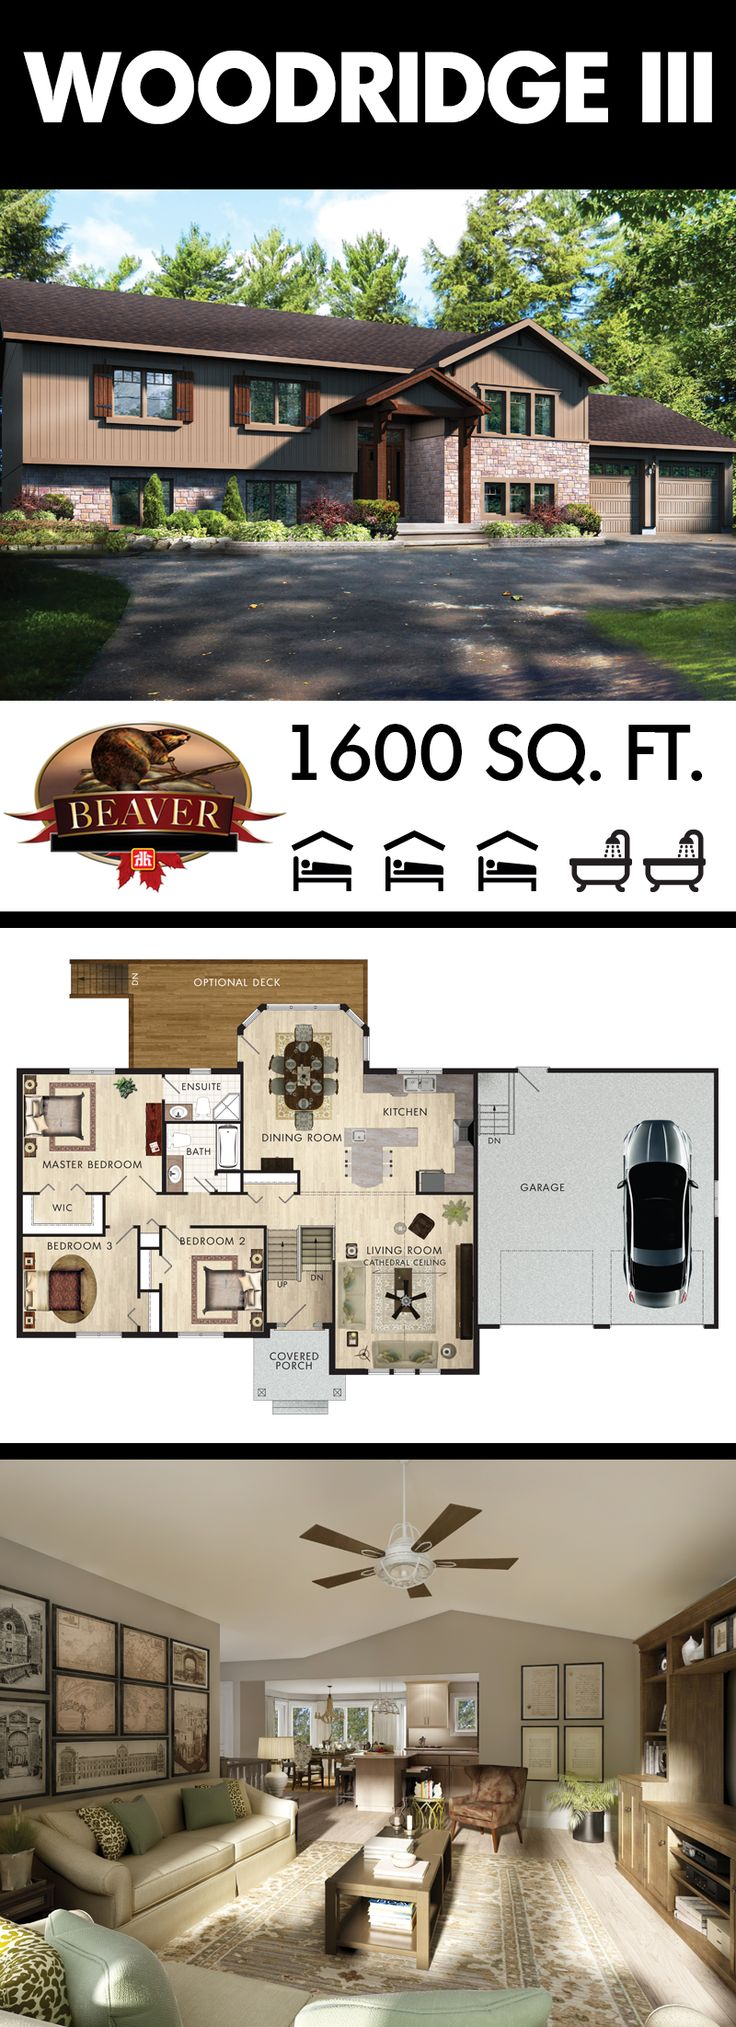 109 best beaver homes and cottages images on pinterest house